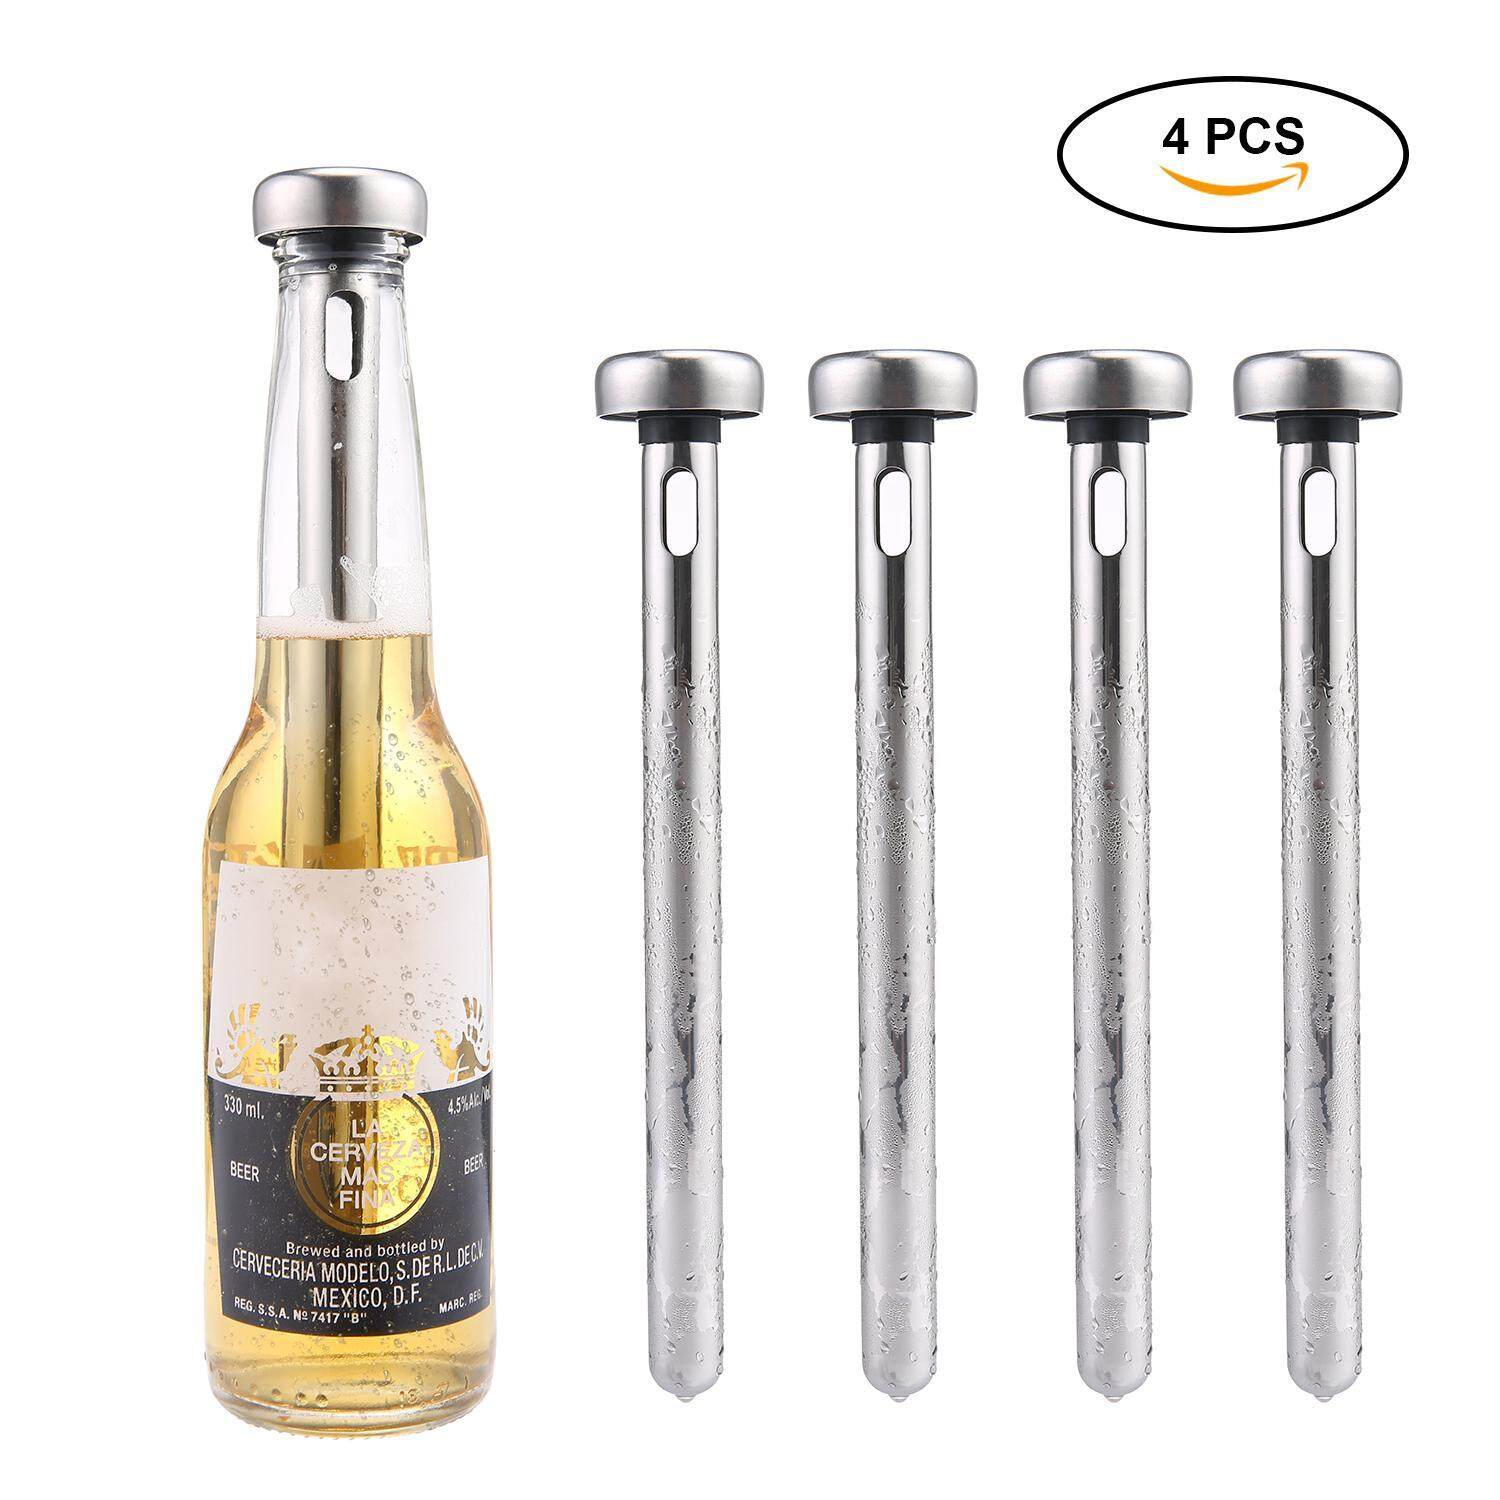 Goodgreat Beer Cooler,beer Chiller Stick Stainless Steel Wine Cooler Beer Drink Colder & Longer Wine Accessories For Watch The World Cup/party Perfect Gift(4 Pcs) By Good&great.